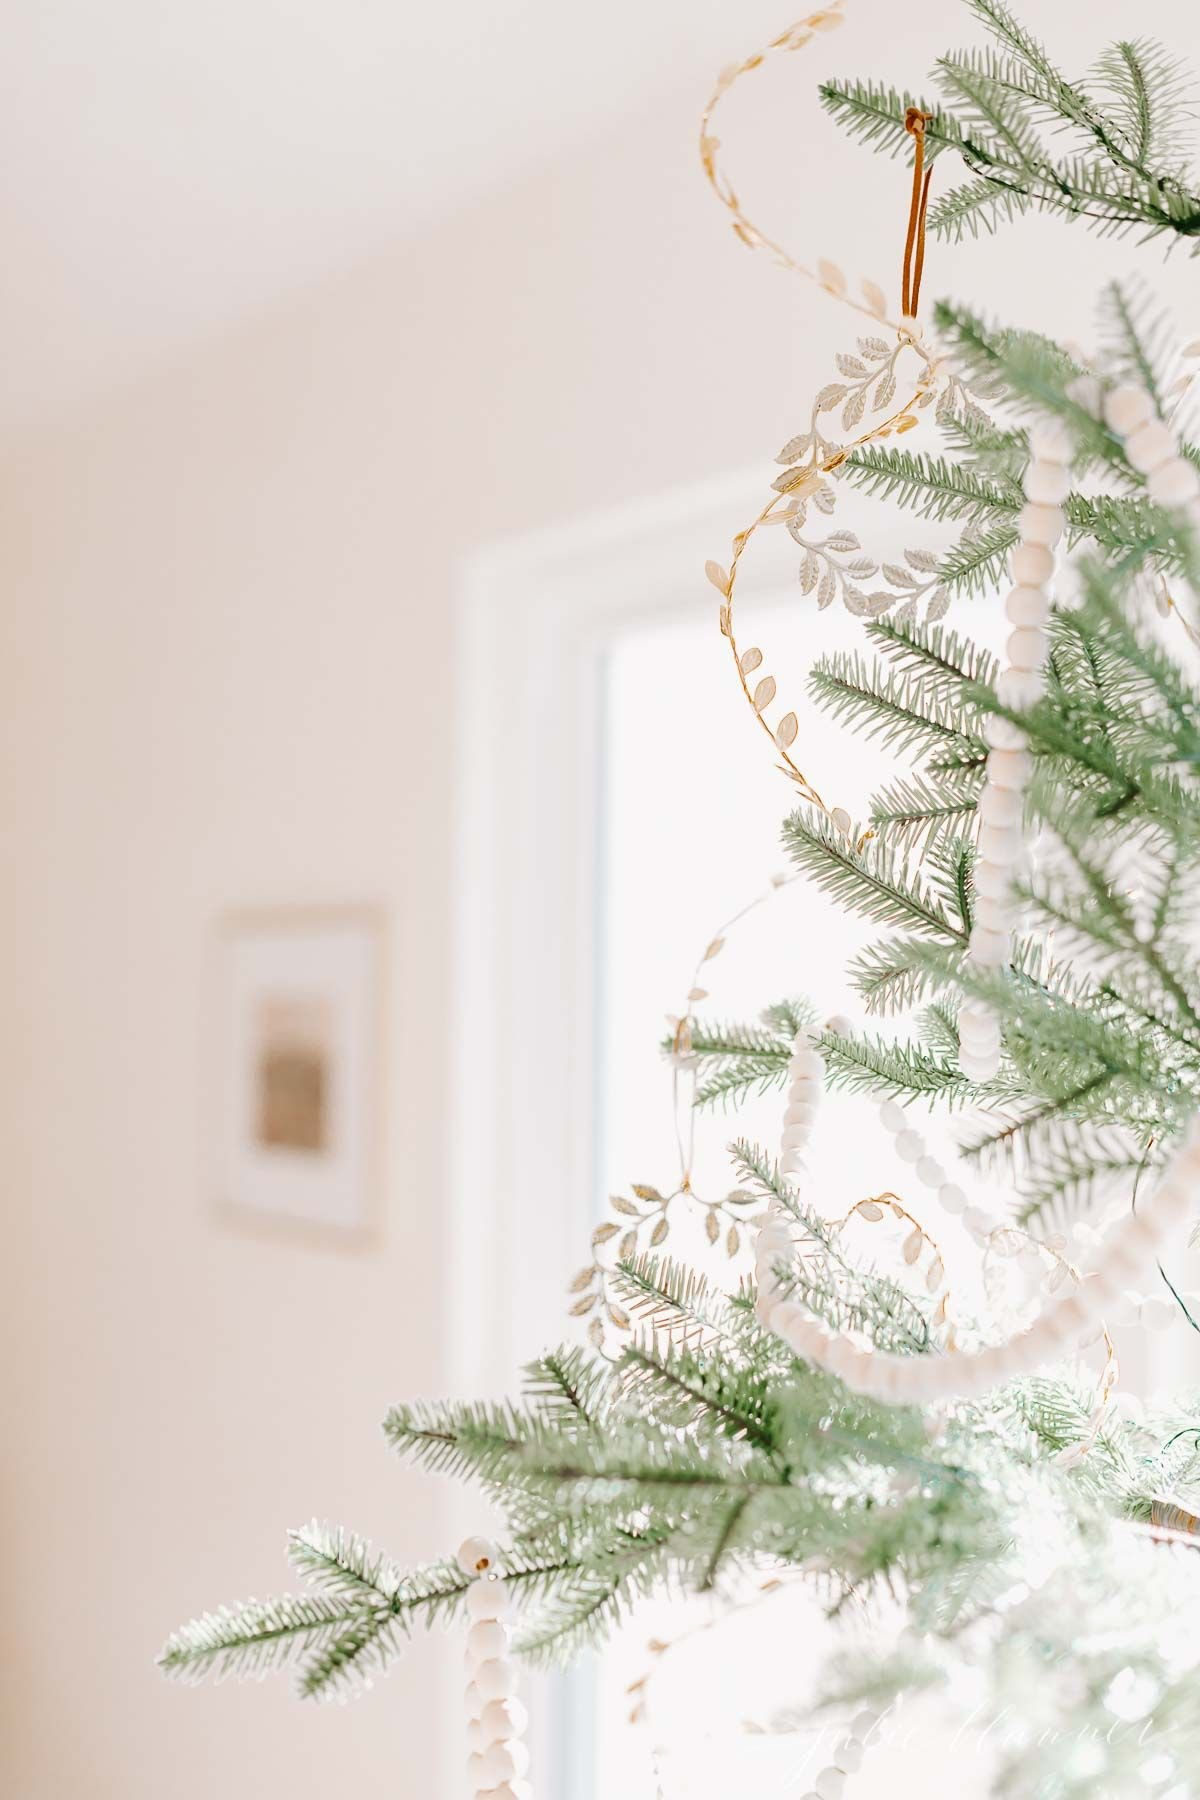 A Scandinavian sparse Christmas tree decorated very simply.